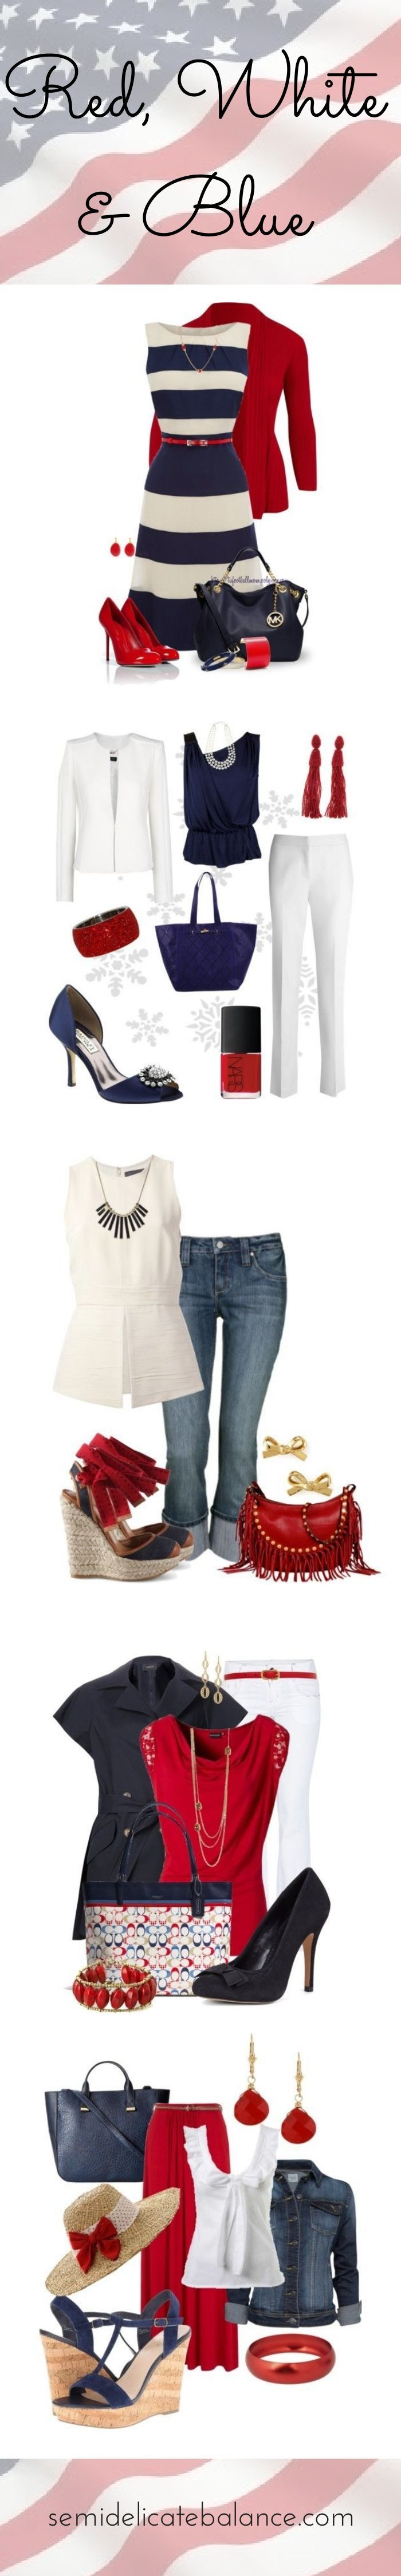 Perfect Red, White, & Blue Outfits For Military Homecomings   military spouse, deployment, patriotic